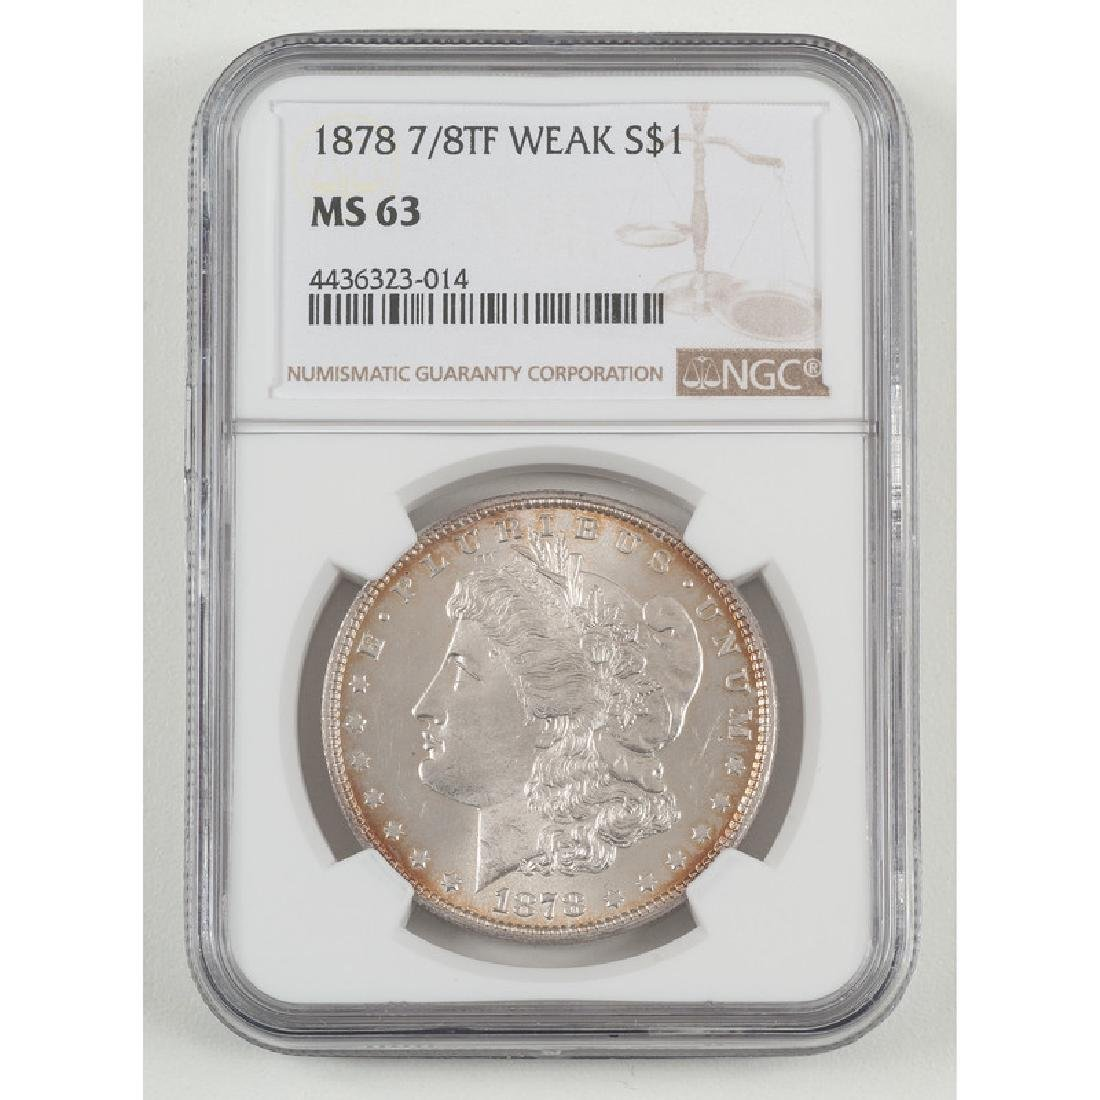 United States Morgan Silver Dollar 1878 7/8TF, NGC MS63